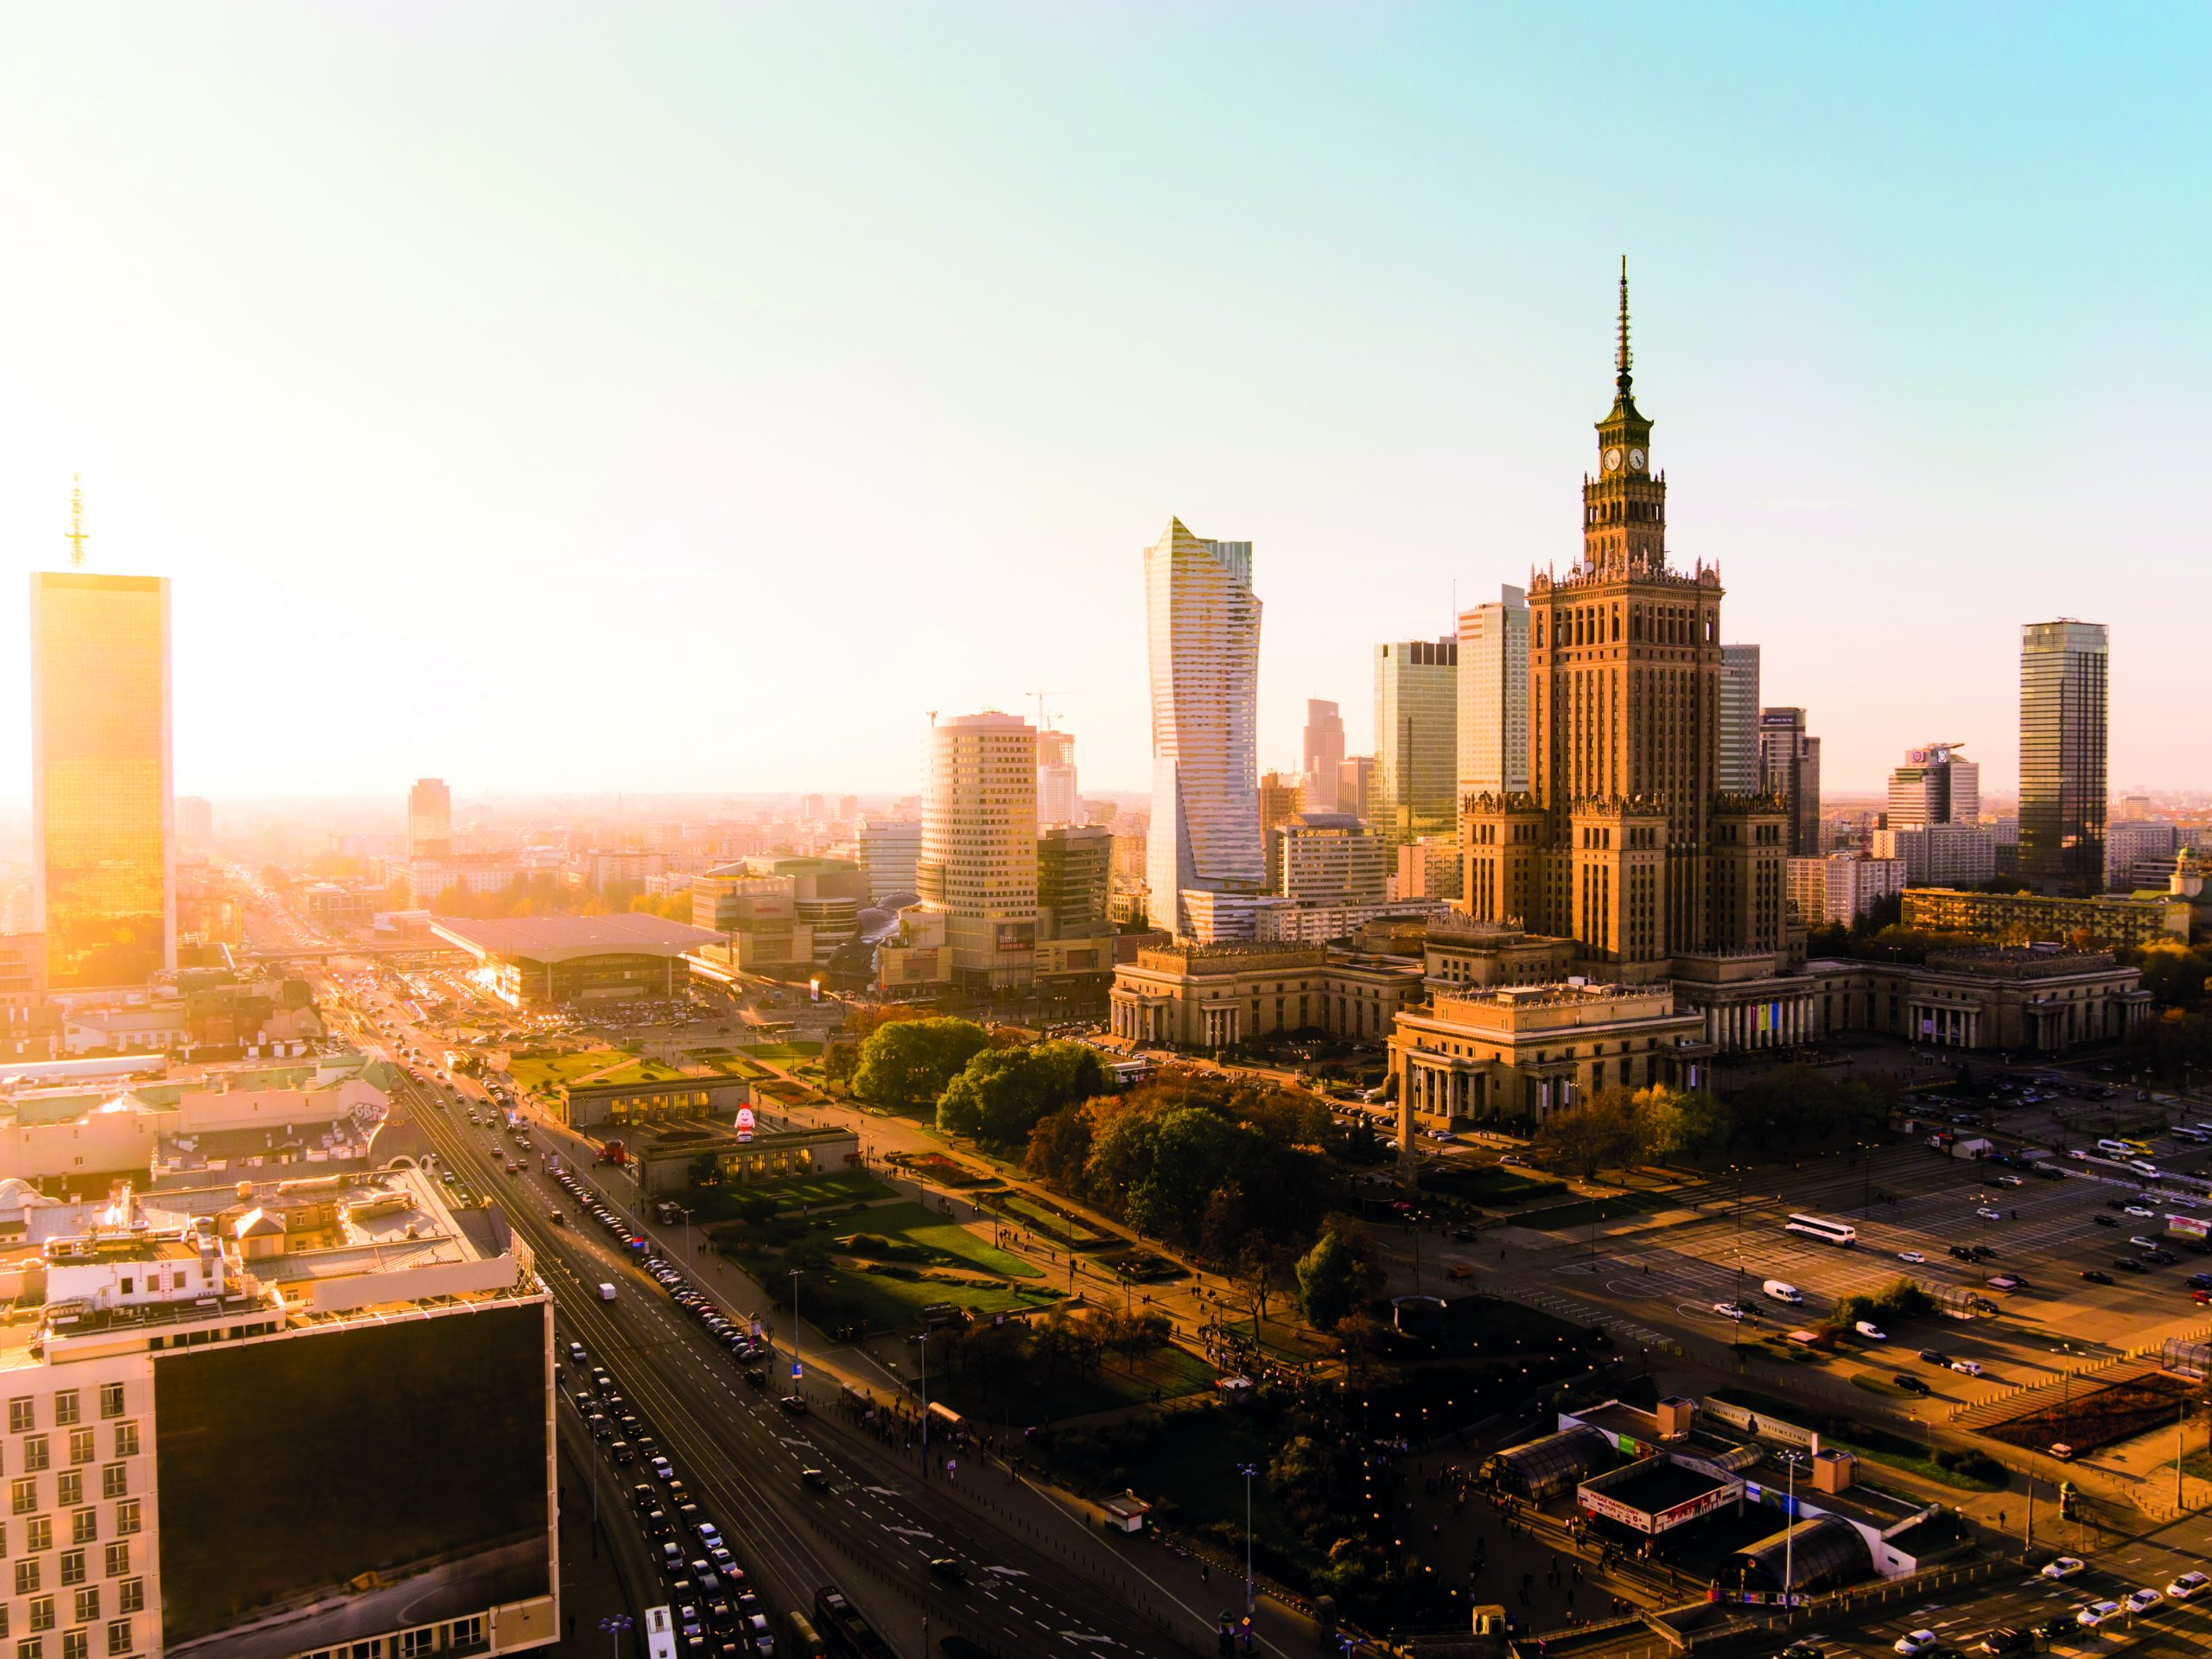 Sun setting over the Palace of Culture and Science and rest of the city in Warsaw, Poland